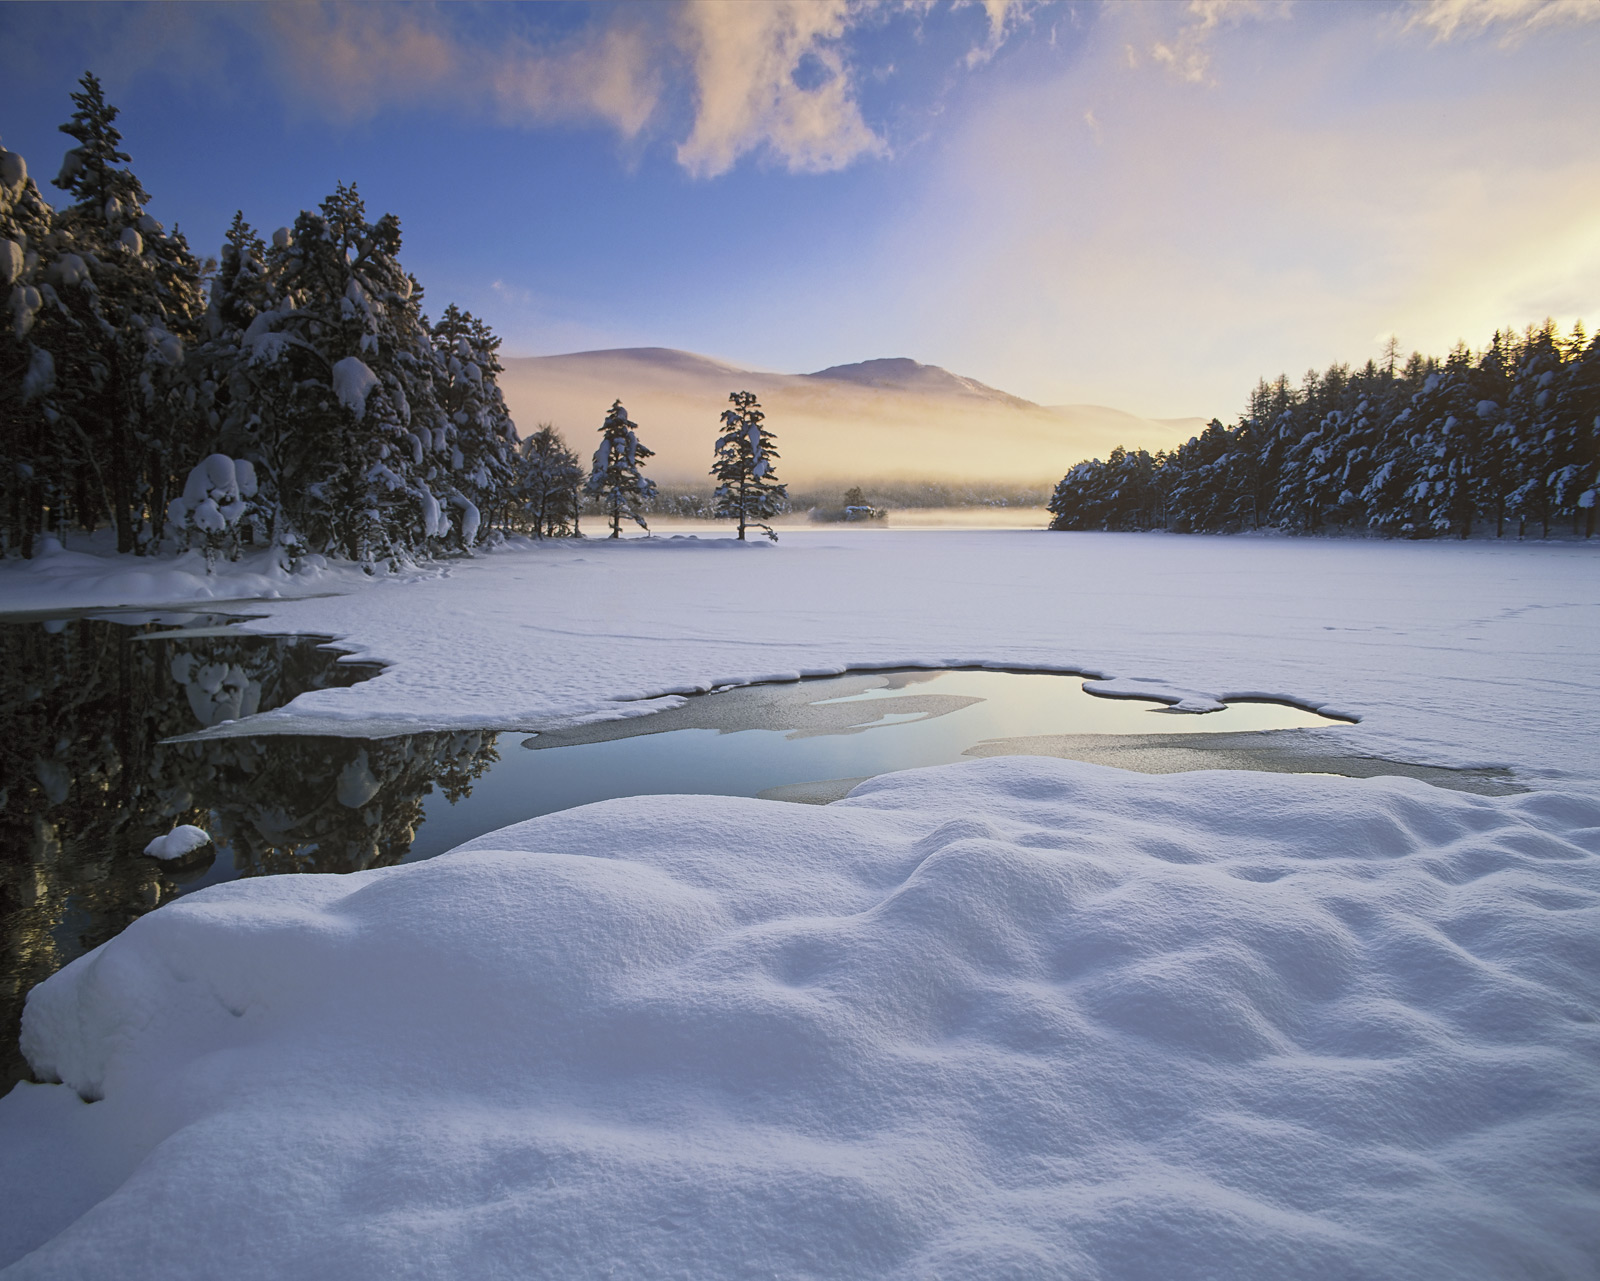 Pillows of soft deep white snow, unblemished perfection stretches out across the near frozen surface of Loch An Eilein it's ruined...